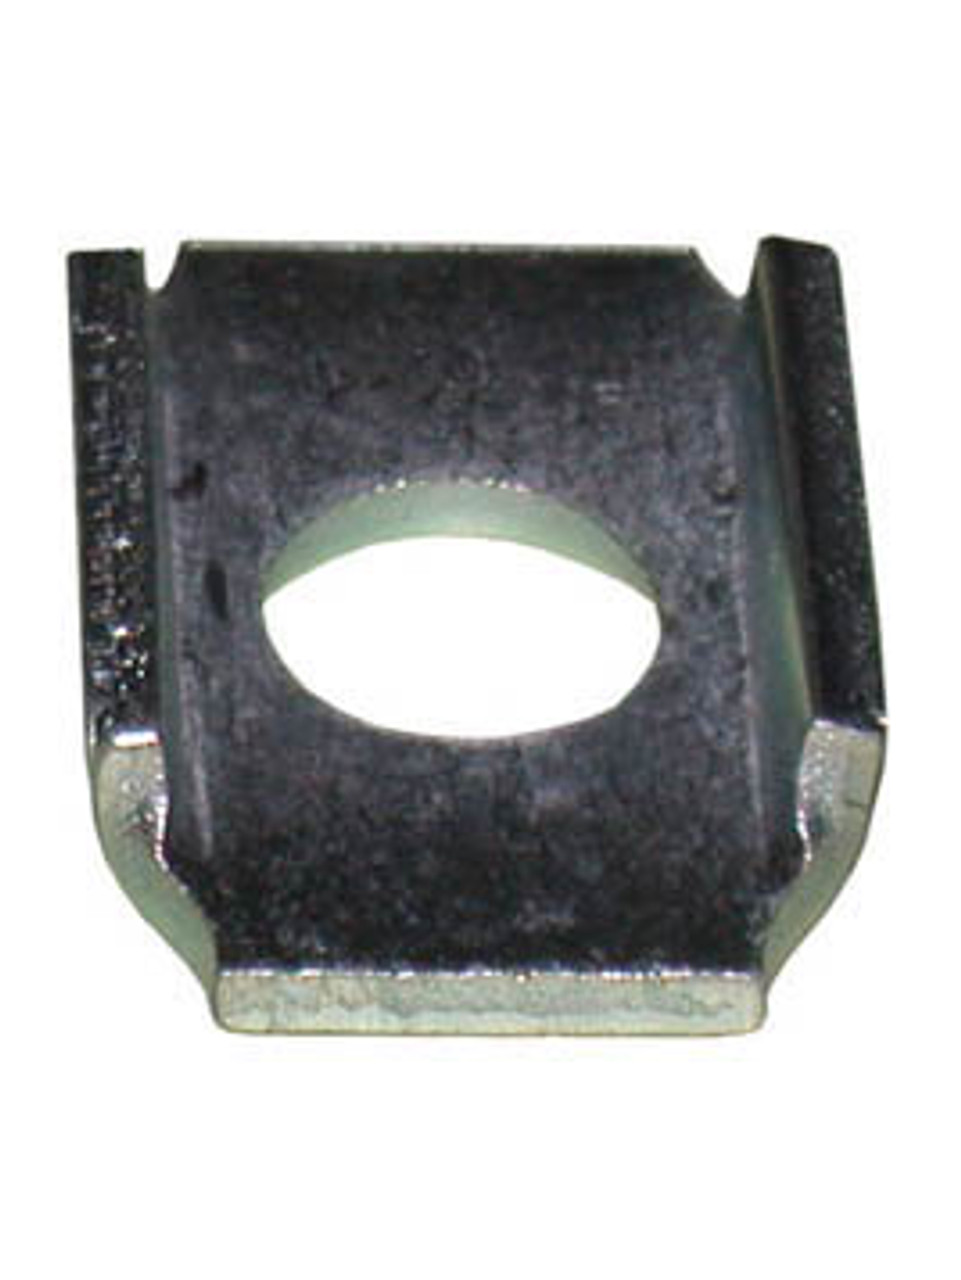 18090 --- Model 6 & 60 Actuator Coupler Locking Plate